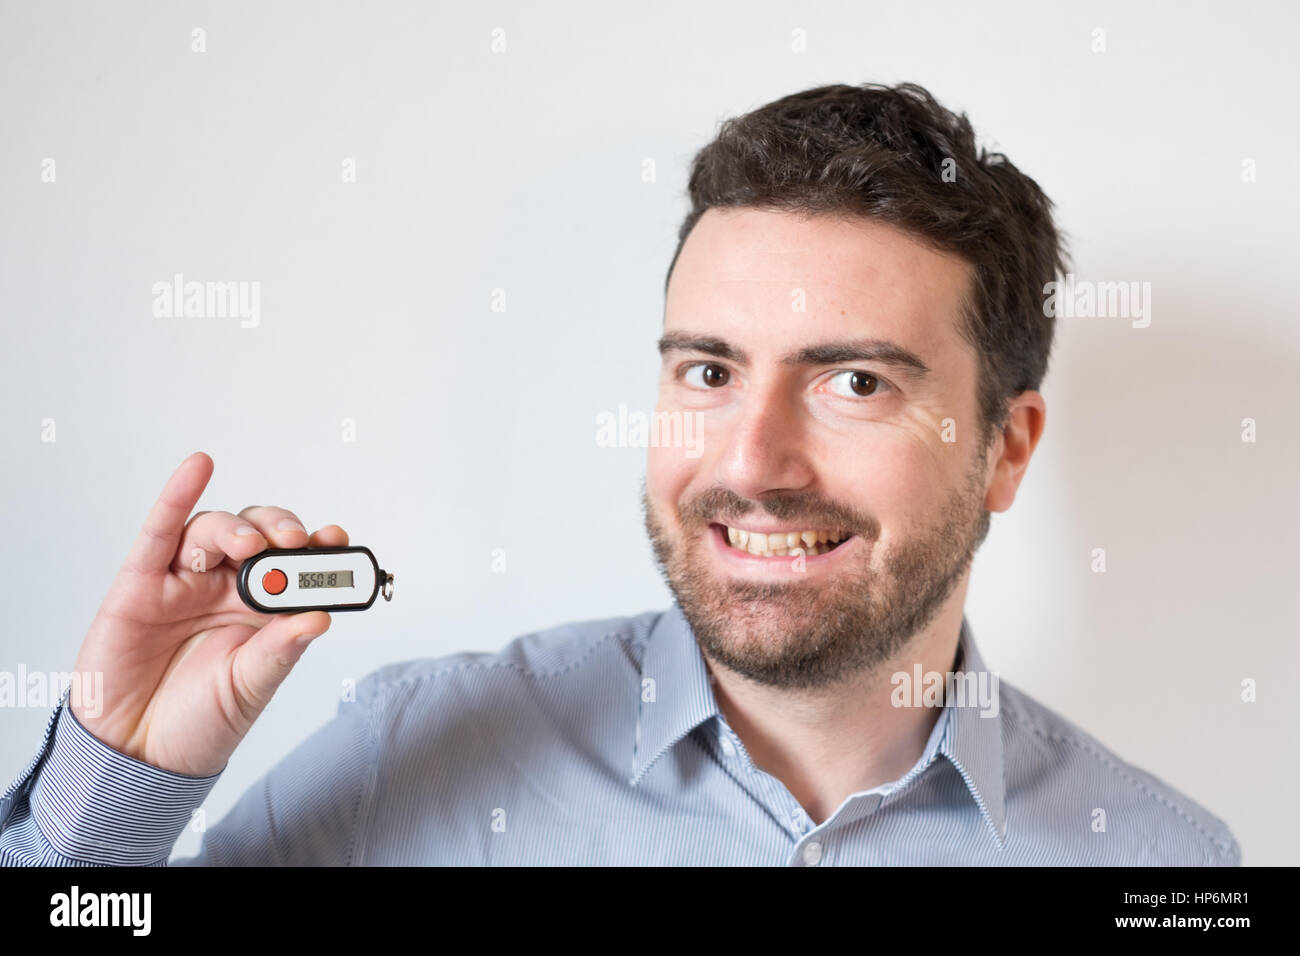 Man holding a security banking pin generator - Stock Image